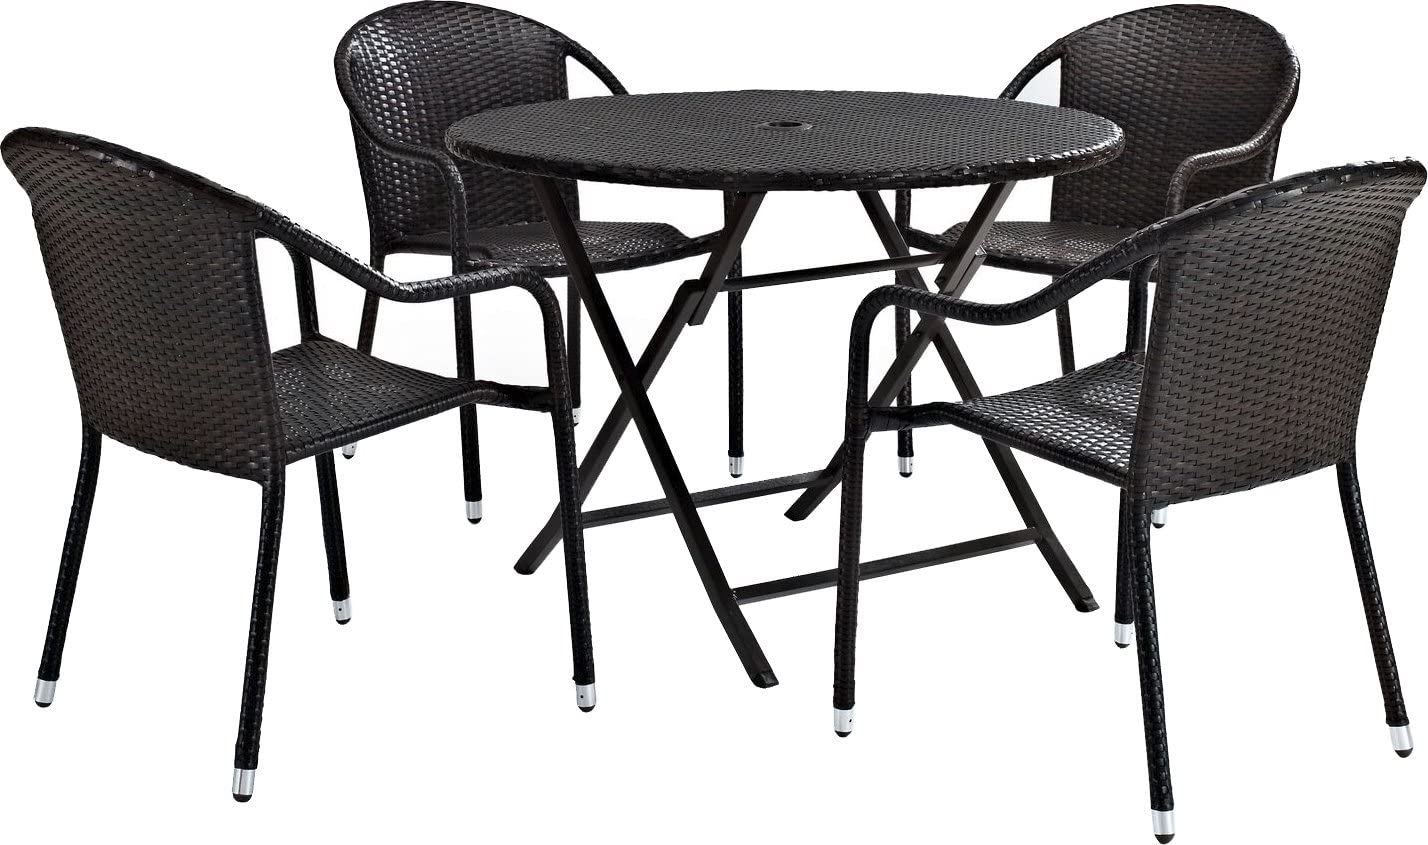 Crosley Furniture Palm Harbor 5-Piece Outdoor Wicker Cafe Dining Set - Brown